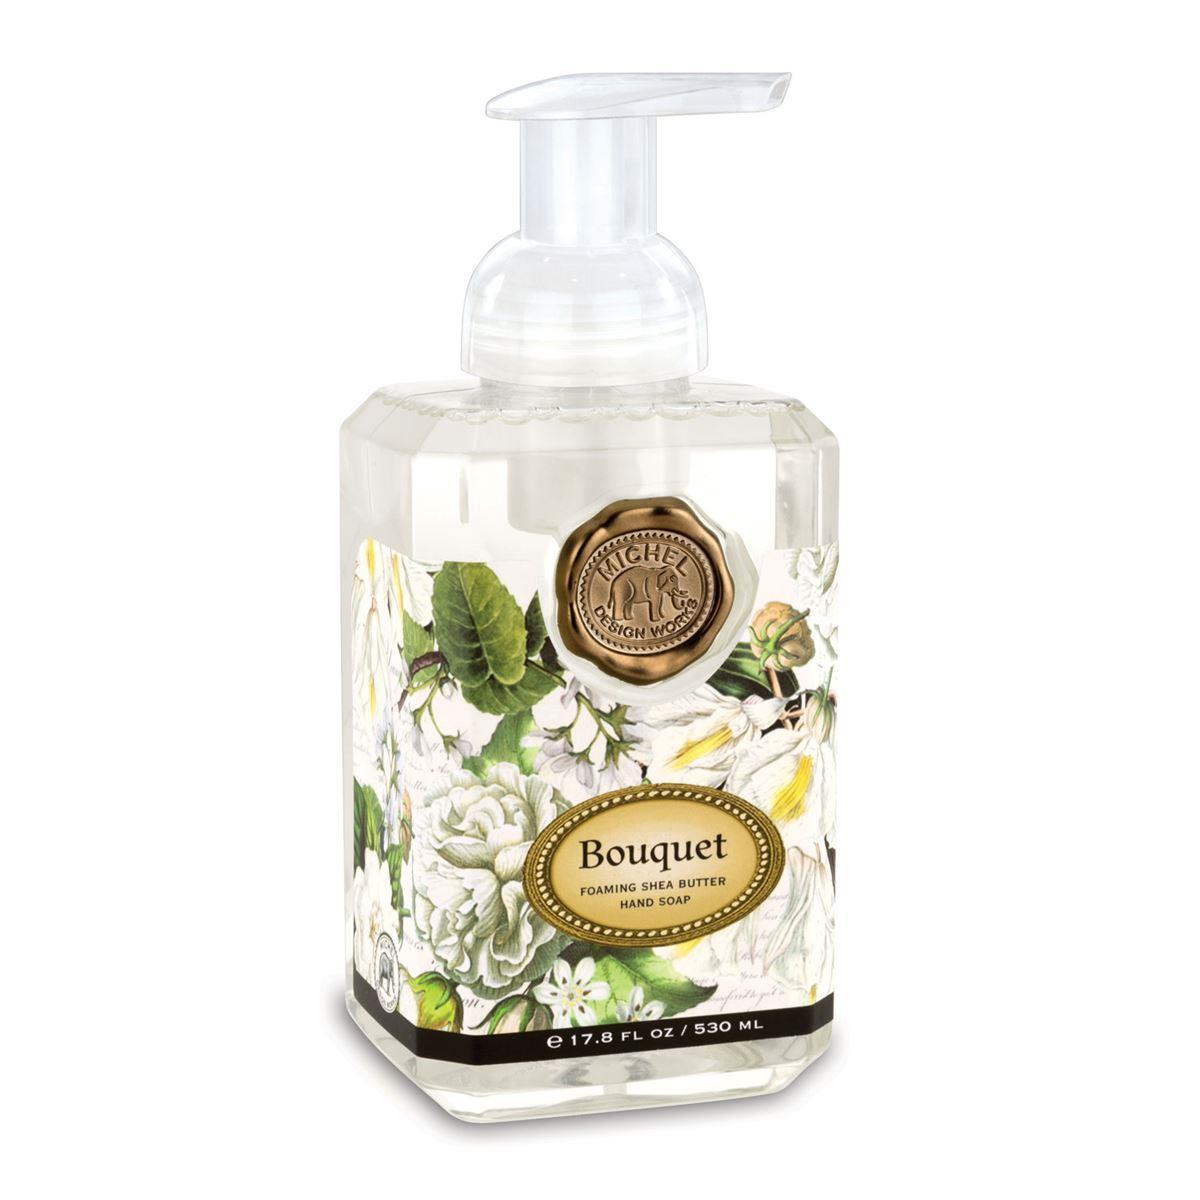 Bouquet Foaming Hand Soap - Boutique Marie Dumas